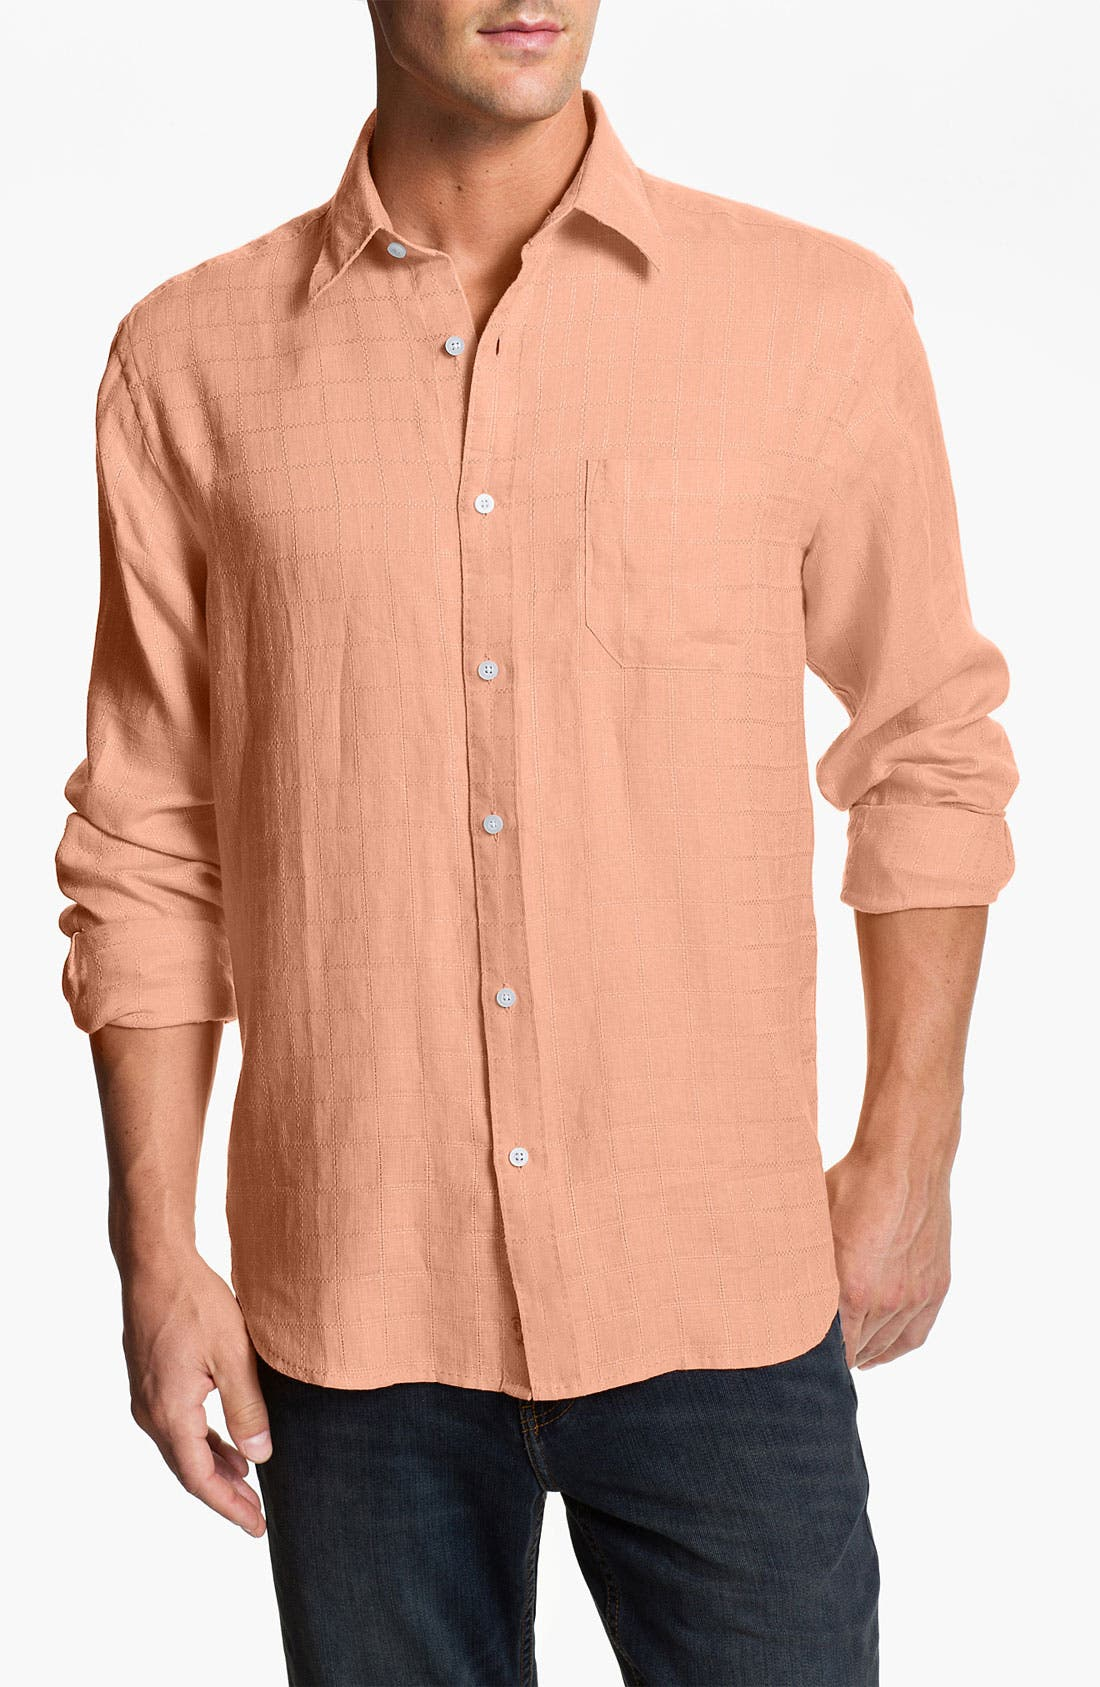 Alternate Image 1 Selected - Tommy Bahama 'Costa Sera' Linen Sport Shirt (Big & Tall)